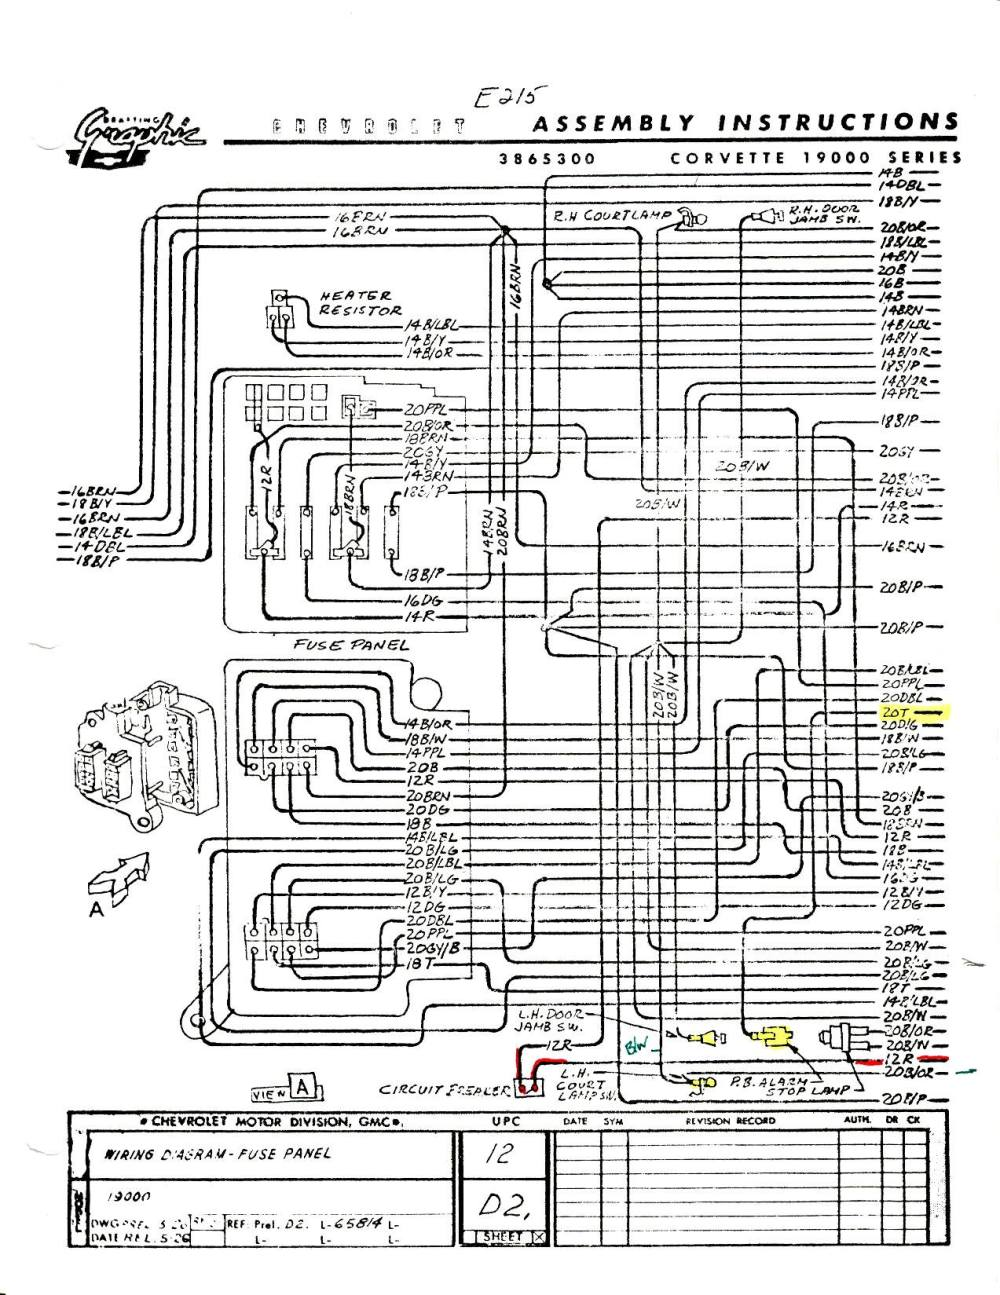 medium resolution of 1965 chevy corvette wiring diagram simple wiring diagrams c6 corvette headlights 65 corvette wiring diagrams wiring